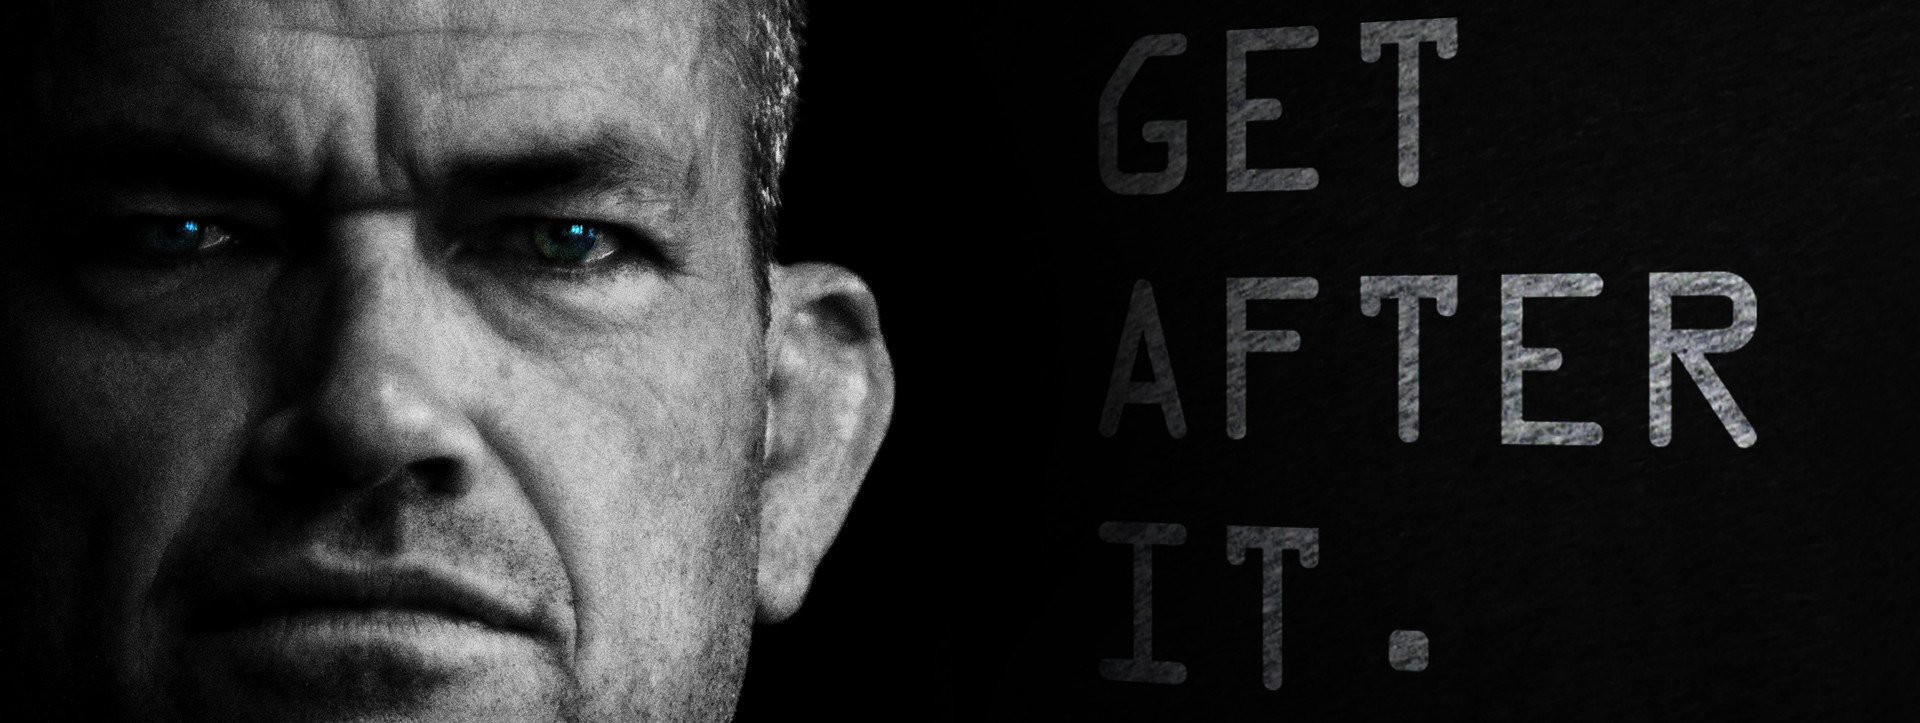 Jocko Willink: My Messy Midlife Crisis In Human Form